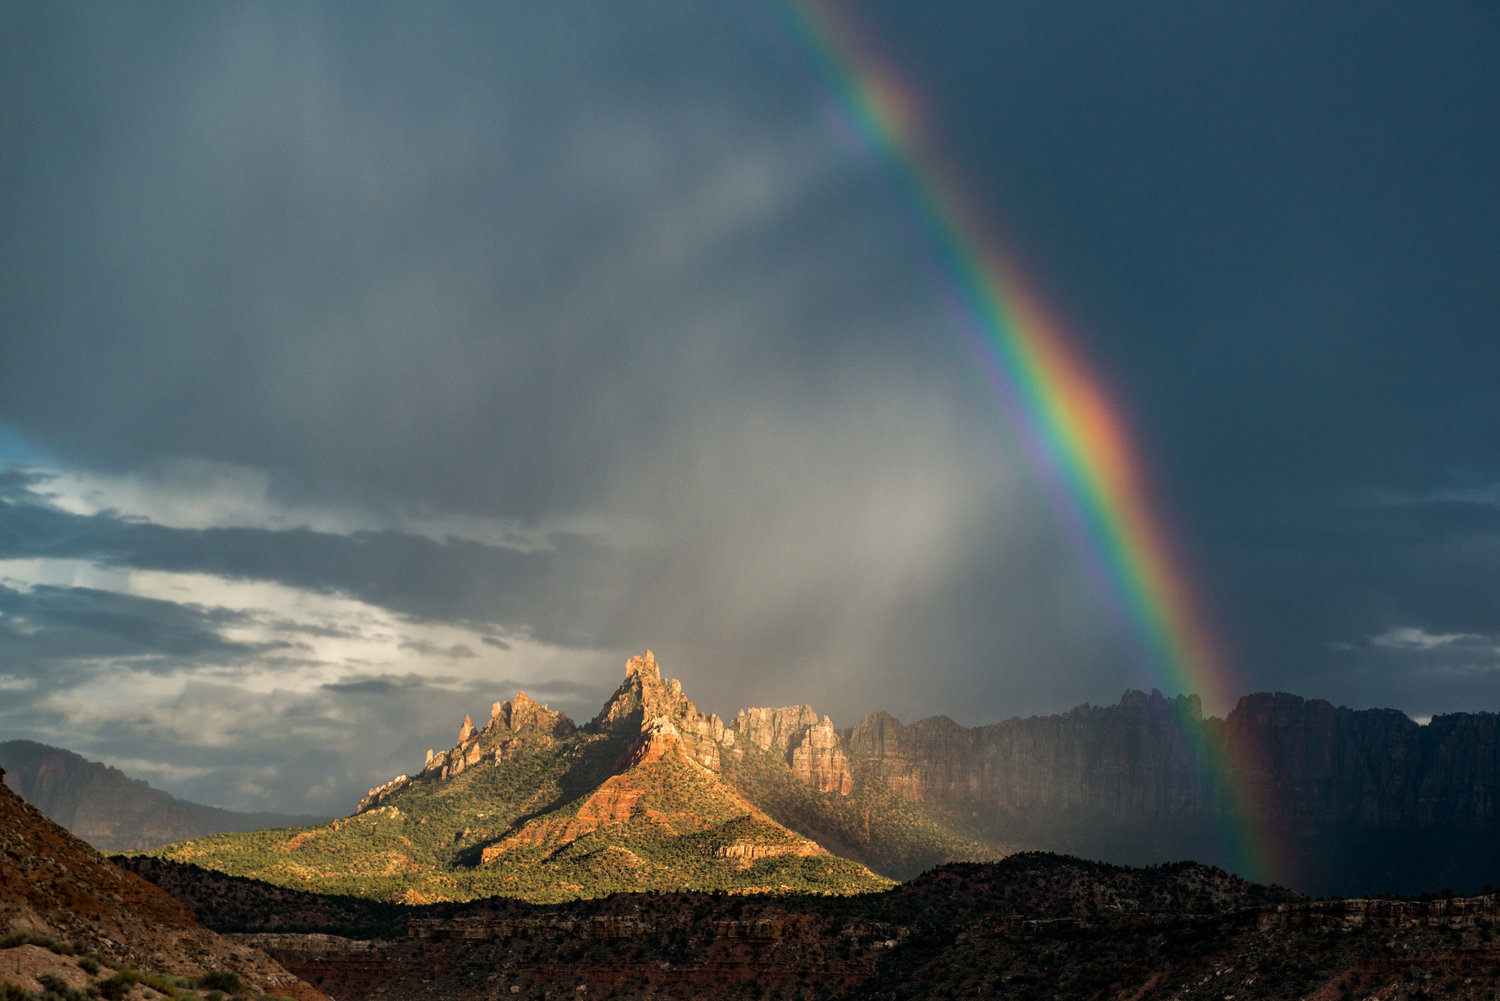 Eagle Crags in Zion with Monsoon and Rainbow